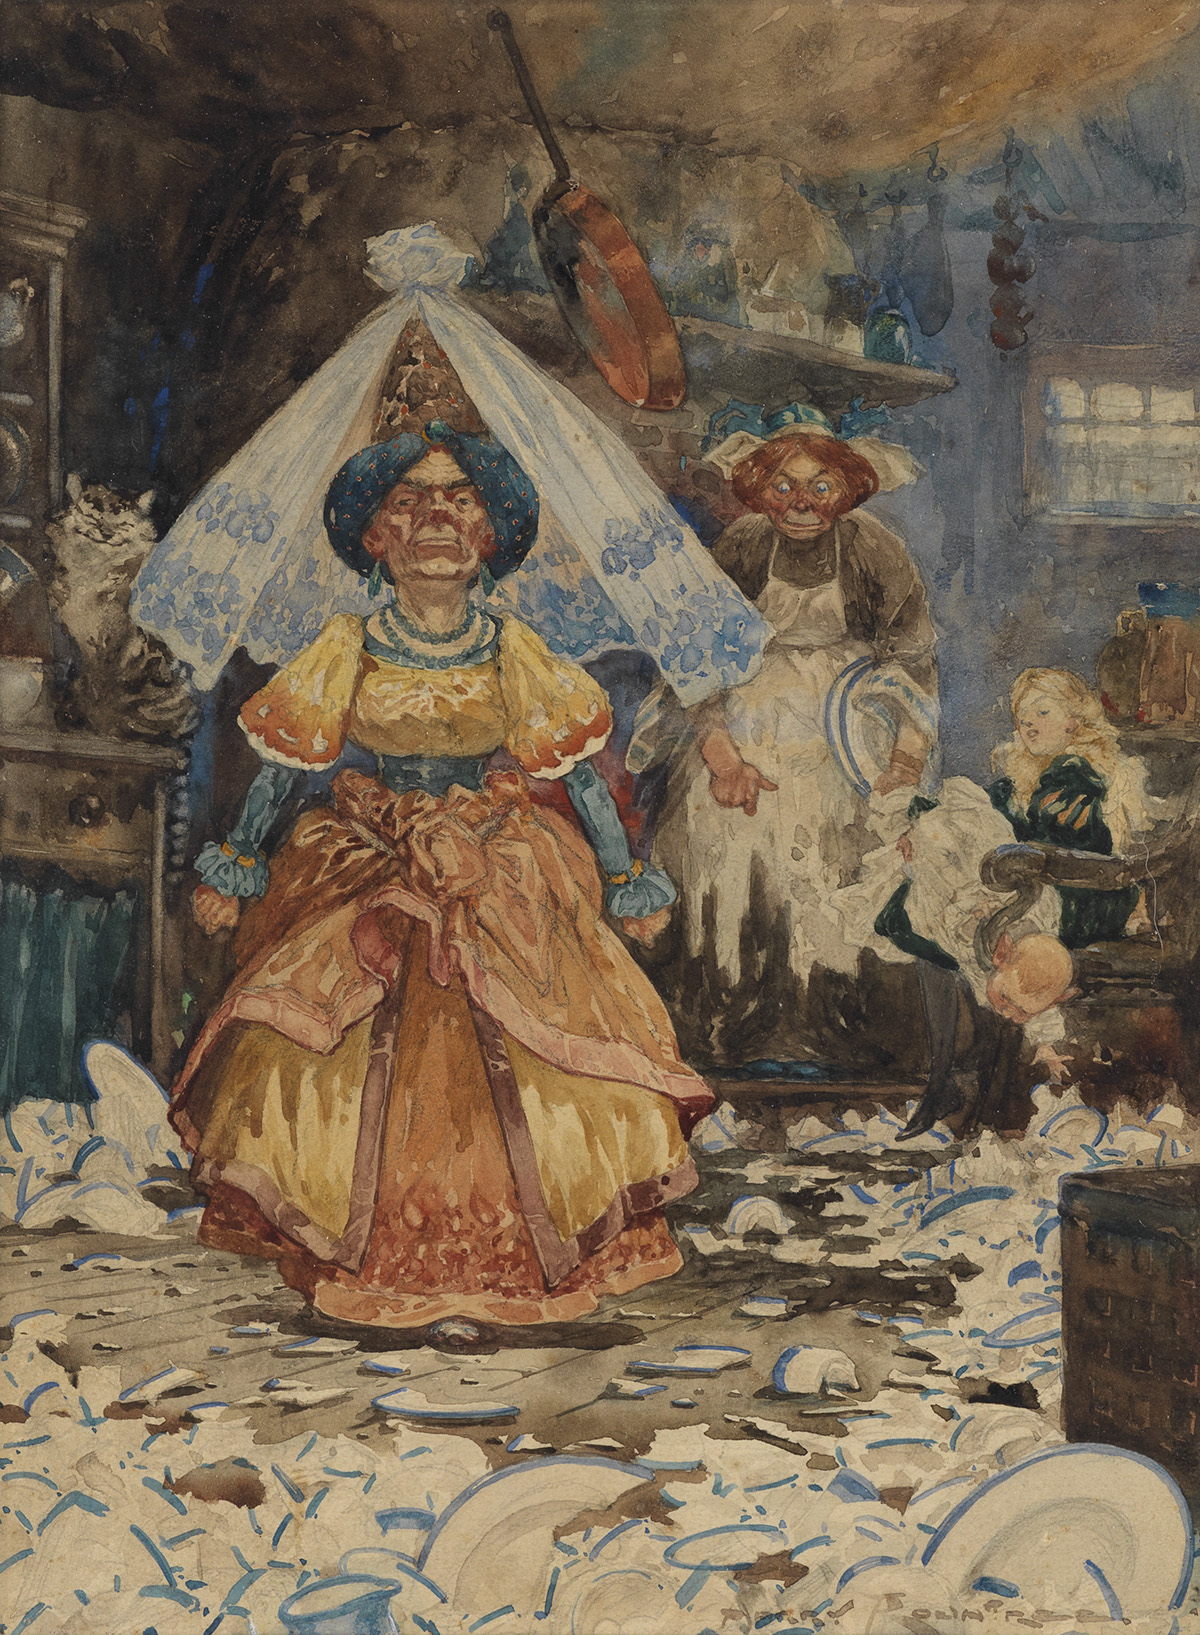 CHILDRENS ALICE IN WONDERLAND  HARRY ROUNTREE. The frying-pan just missed her.